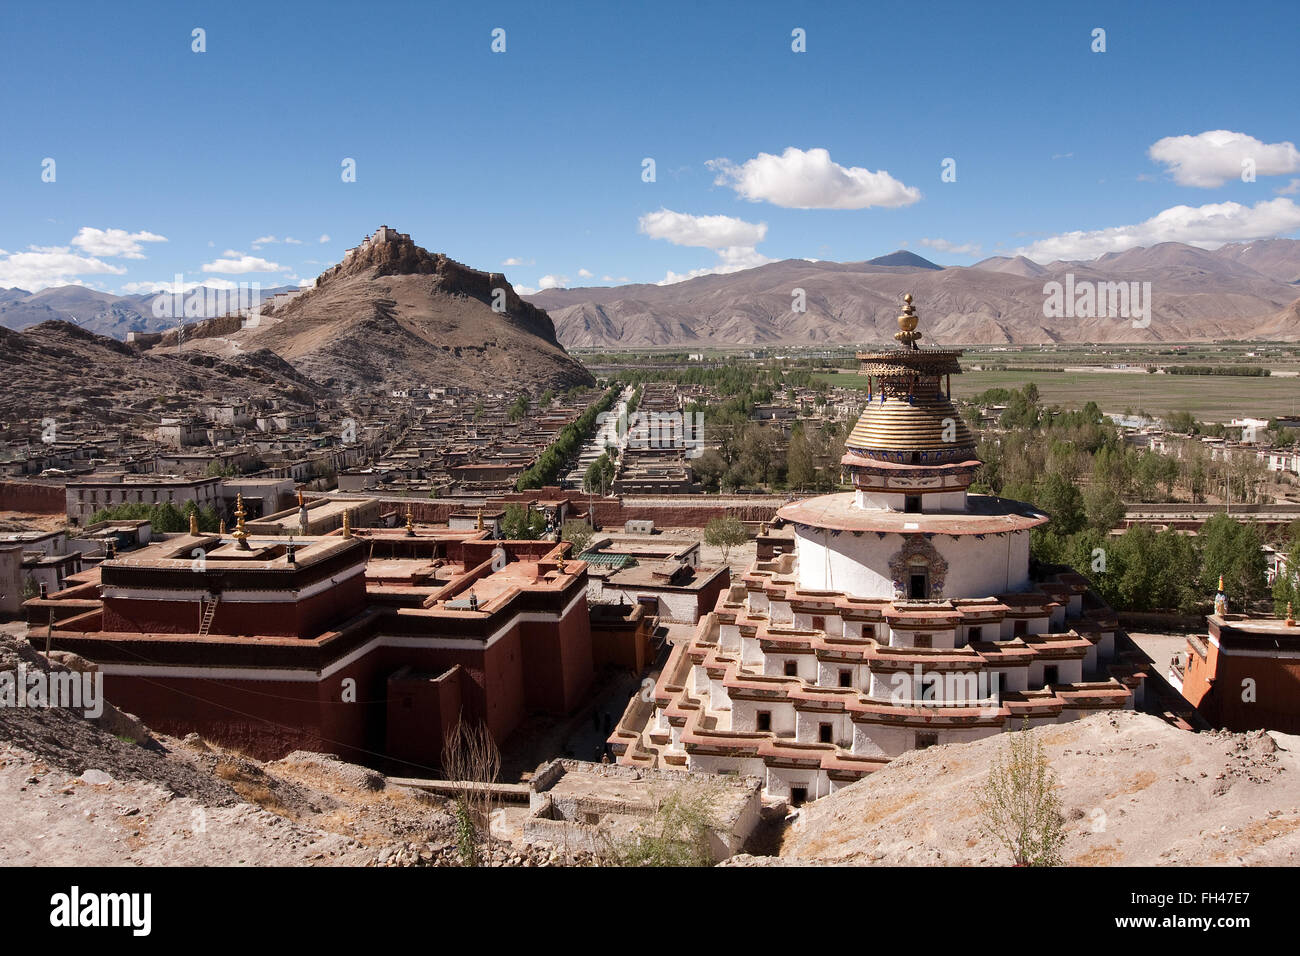 Gyantse Dzong fortress of Gyantse overlooking the Pelko Chode monastery Stock Photo